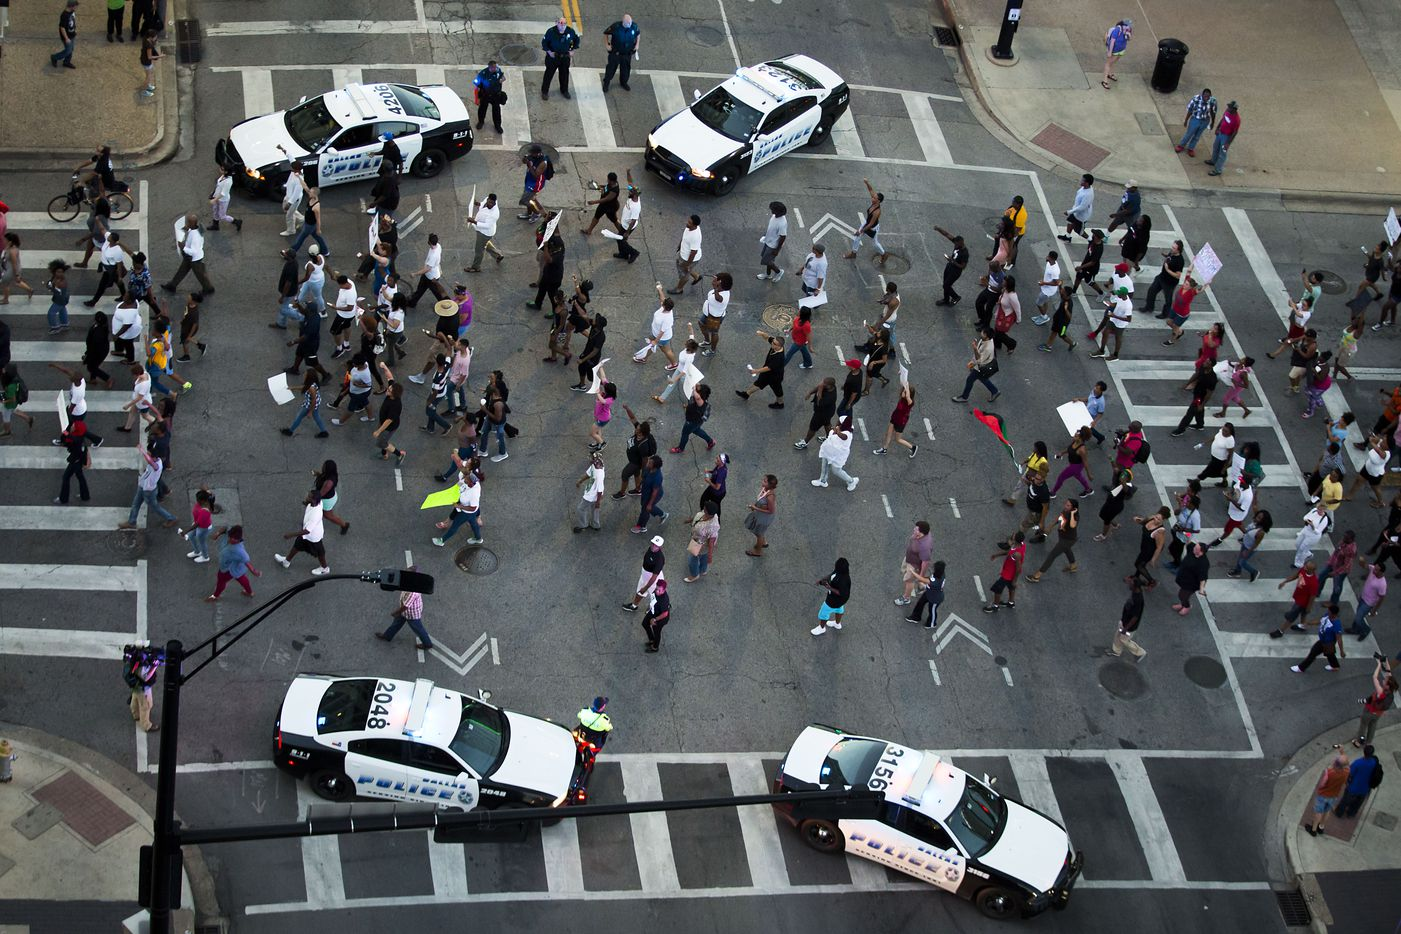 The intersection of Main and Lamar streets in downtown Dallas at the end of the peaceful Black Lives Matter march on July 7. About 15 minutes later, Micah Johnson began his deadly ambush. Three of the officers who were killed can be seen at top of photo. (Smiley N. Pool/Staff Photographer)